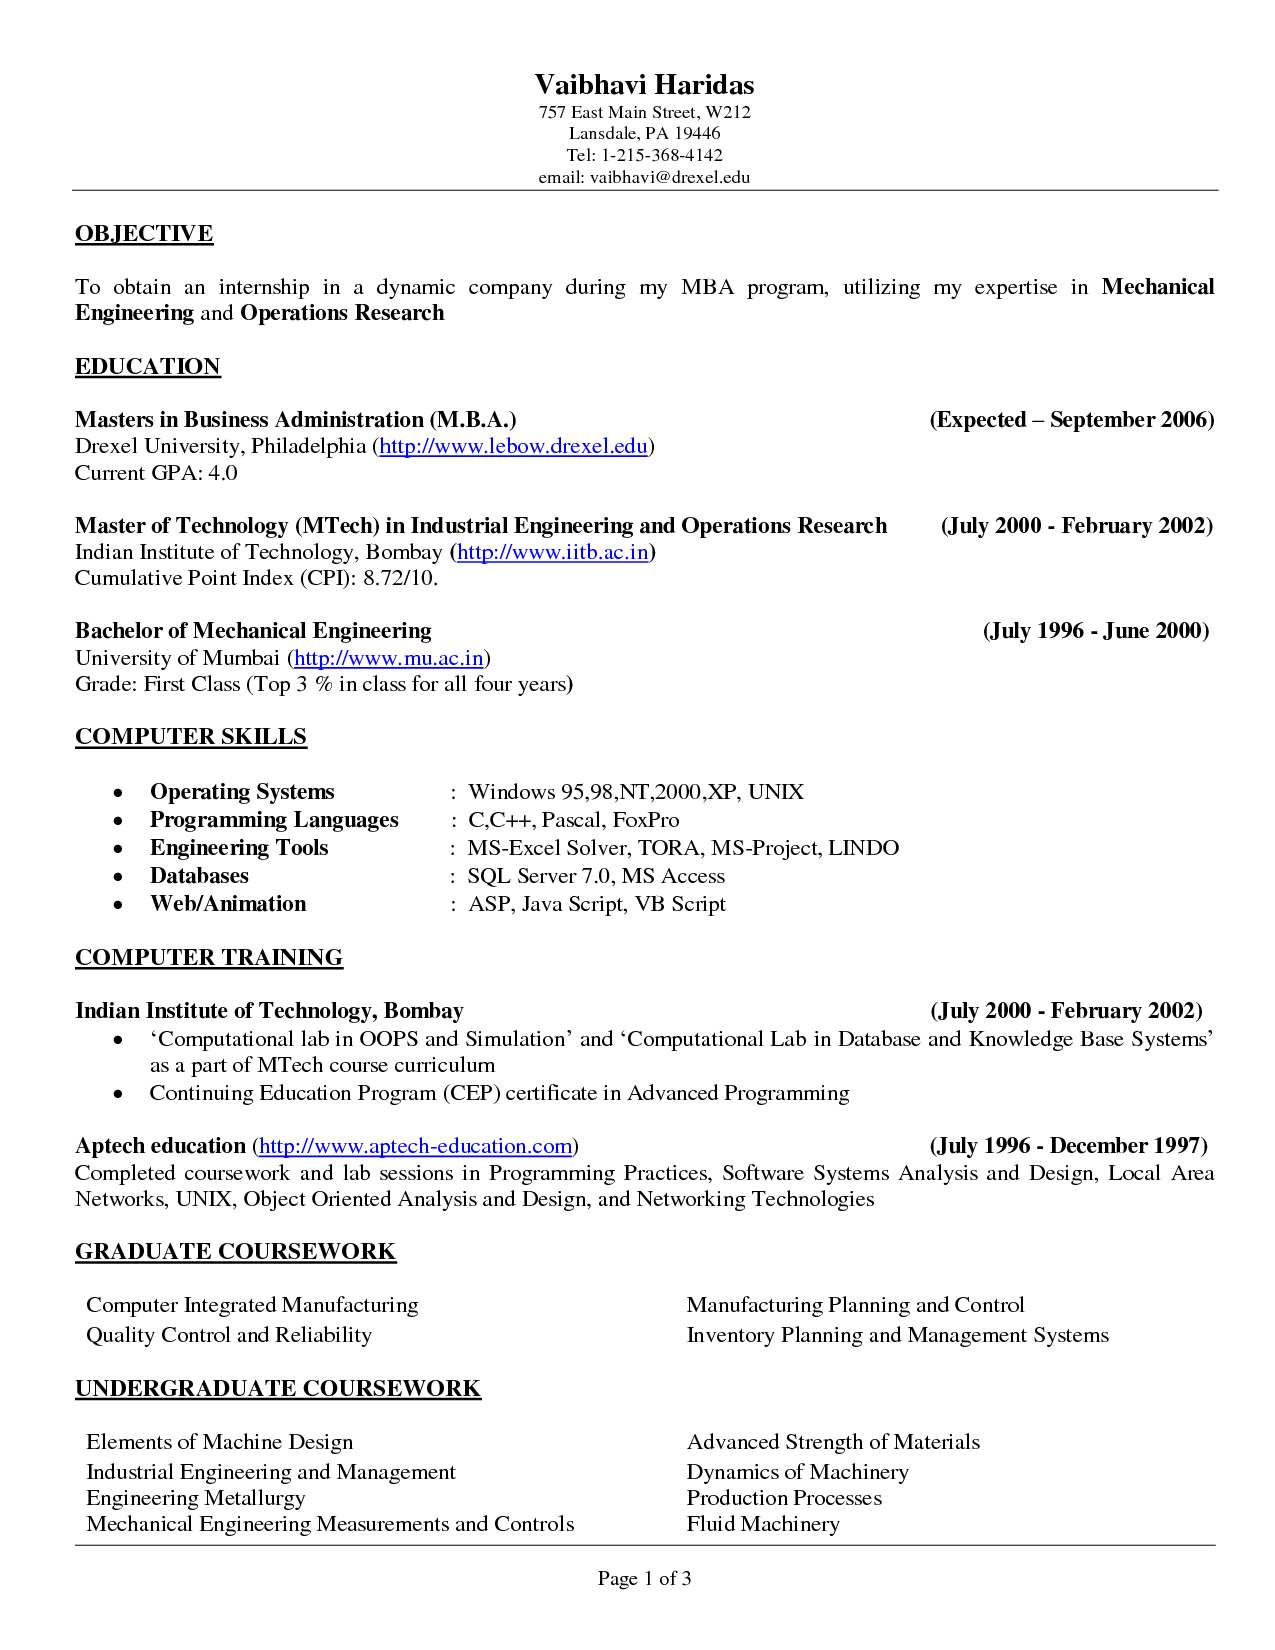 Objective Examples For Resume Resume Objective Example Best Templateresume Objective Examples